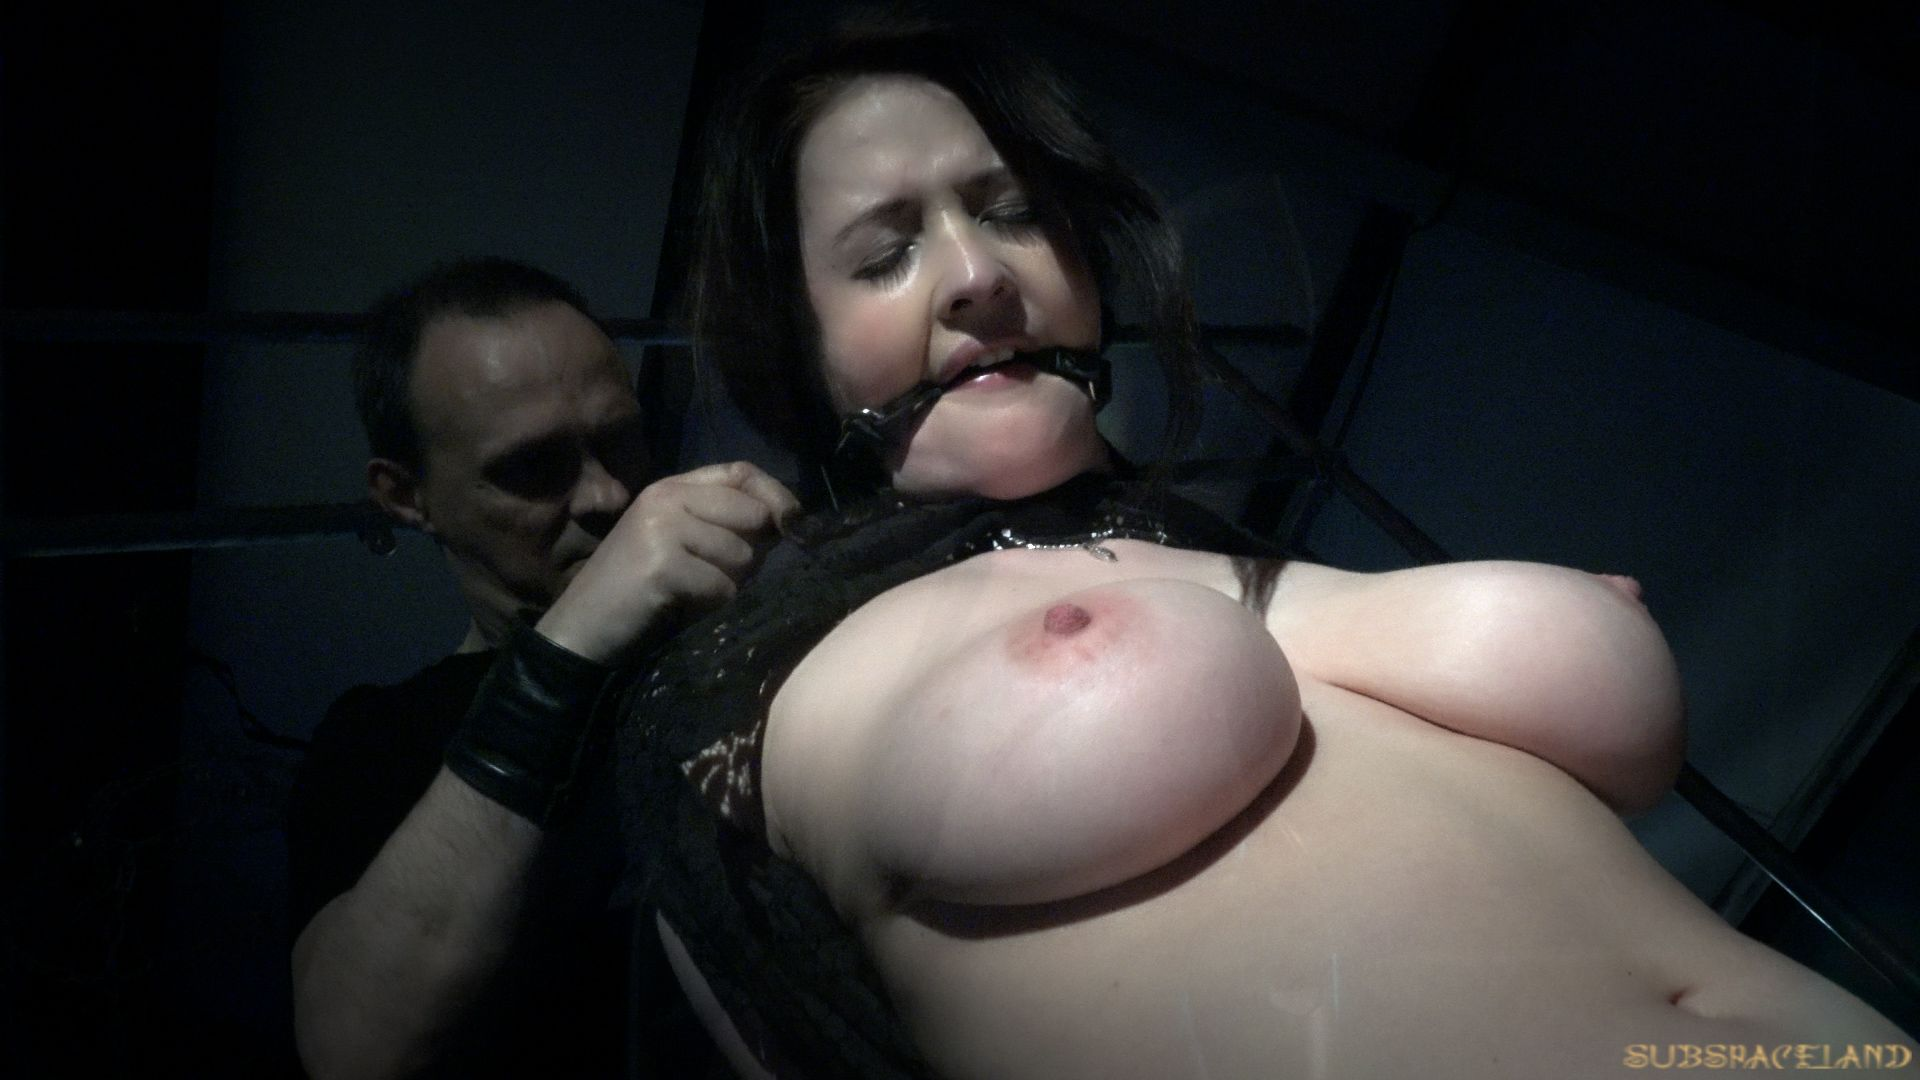 Submissive pretty girl is fucked hard in all her holes - 2 10